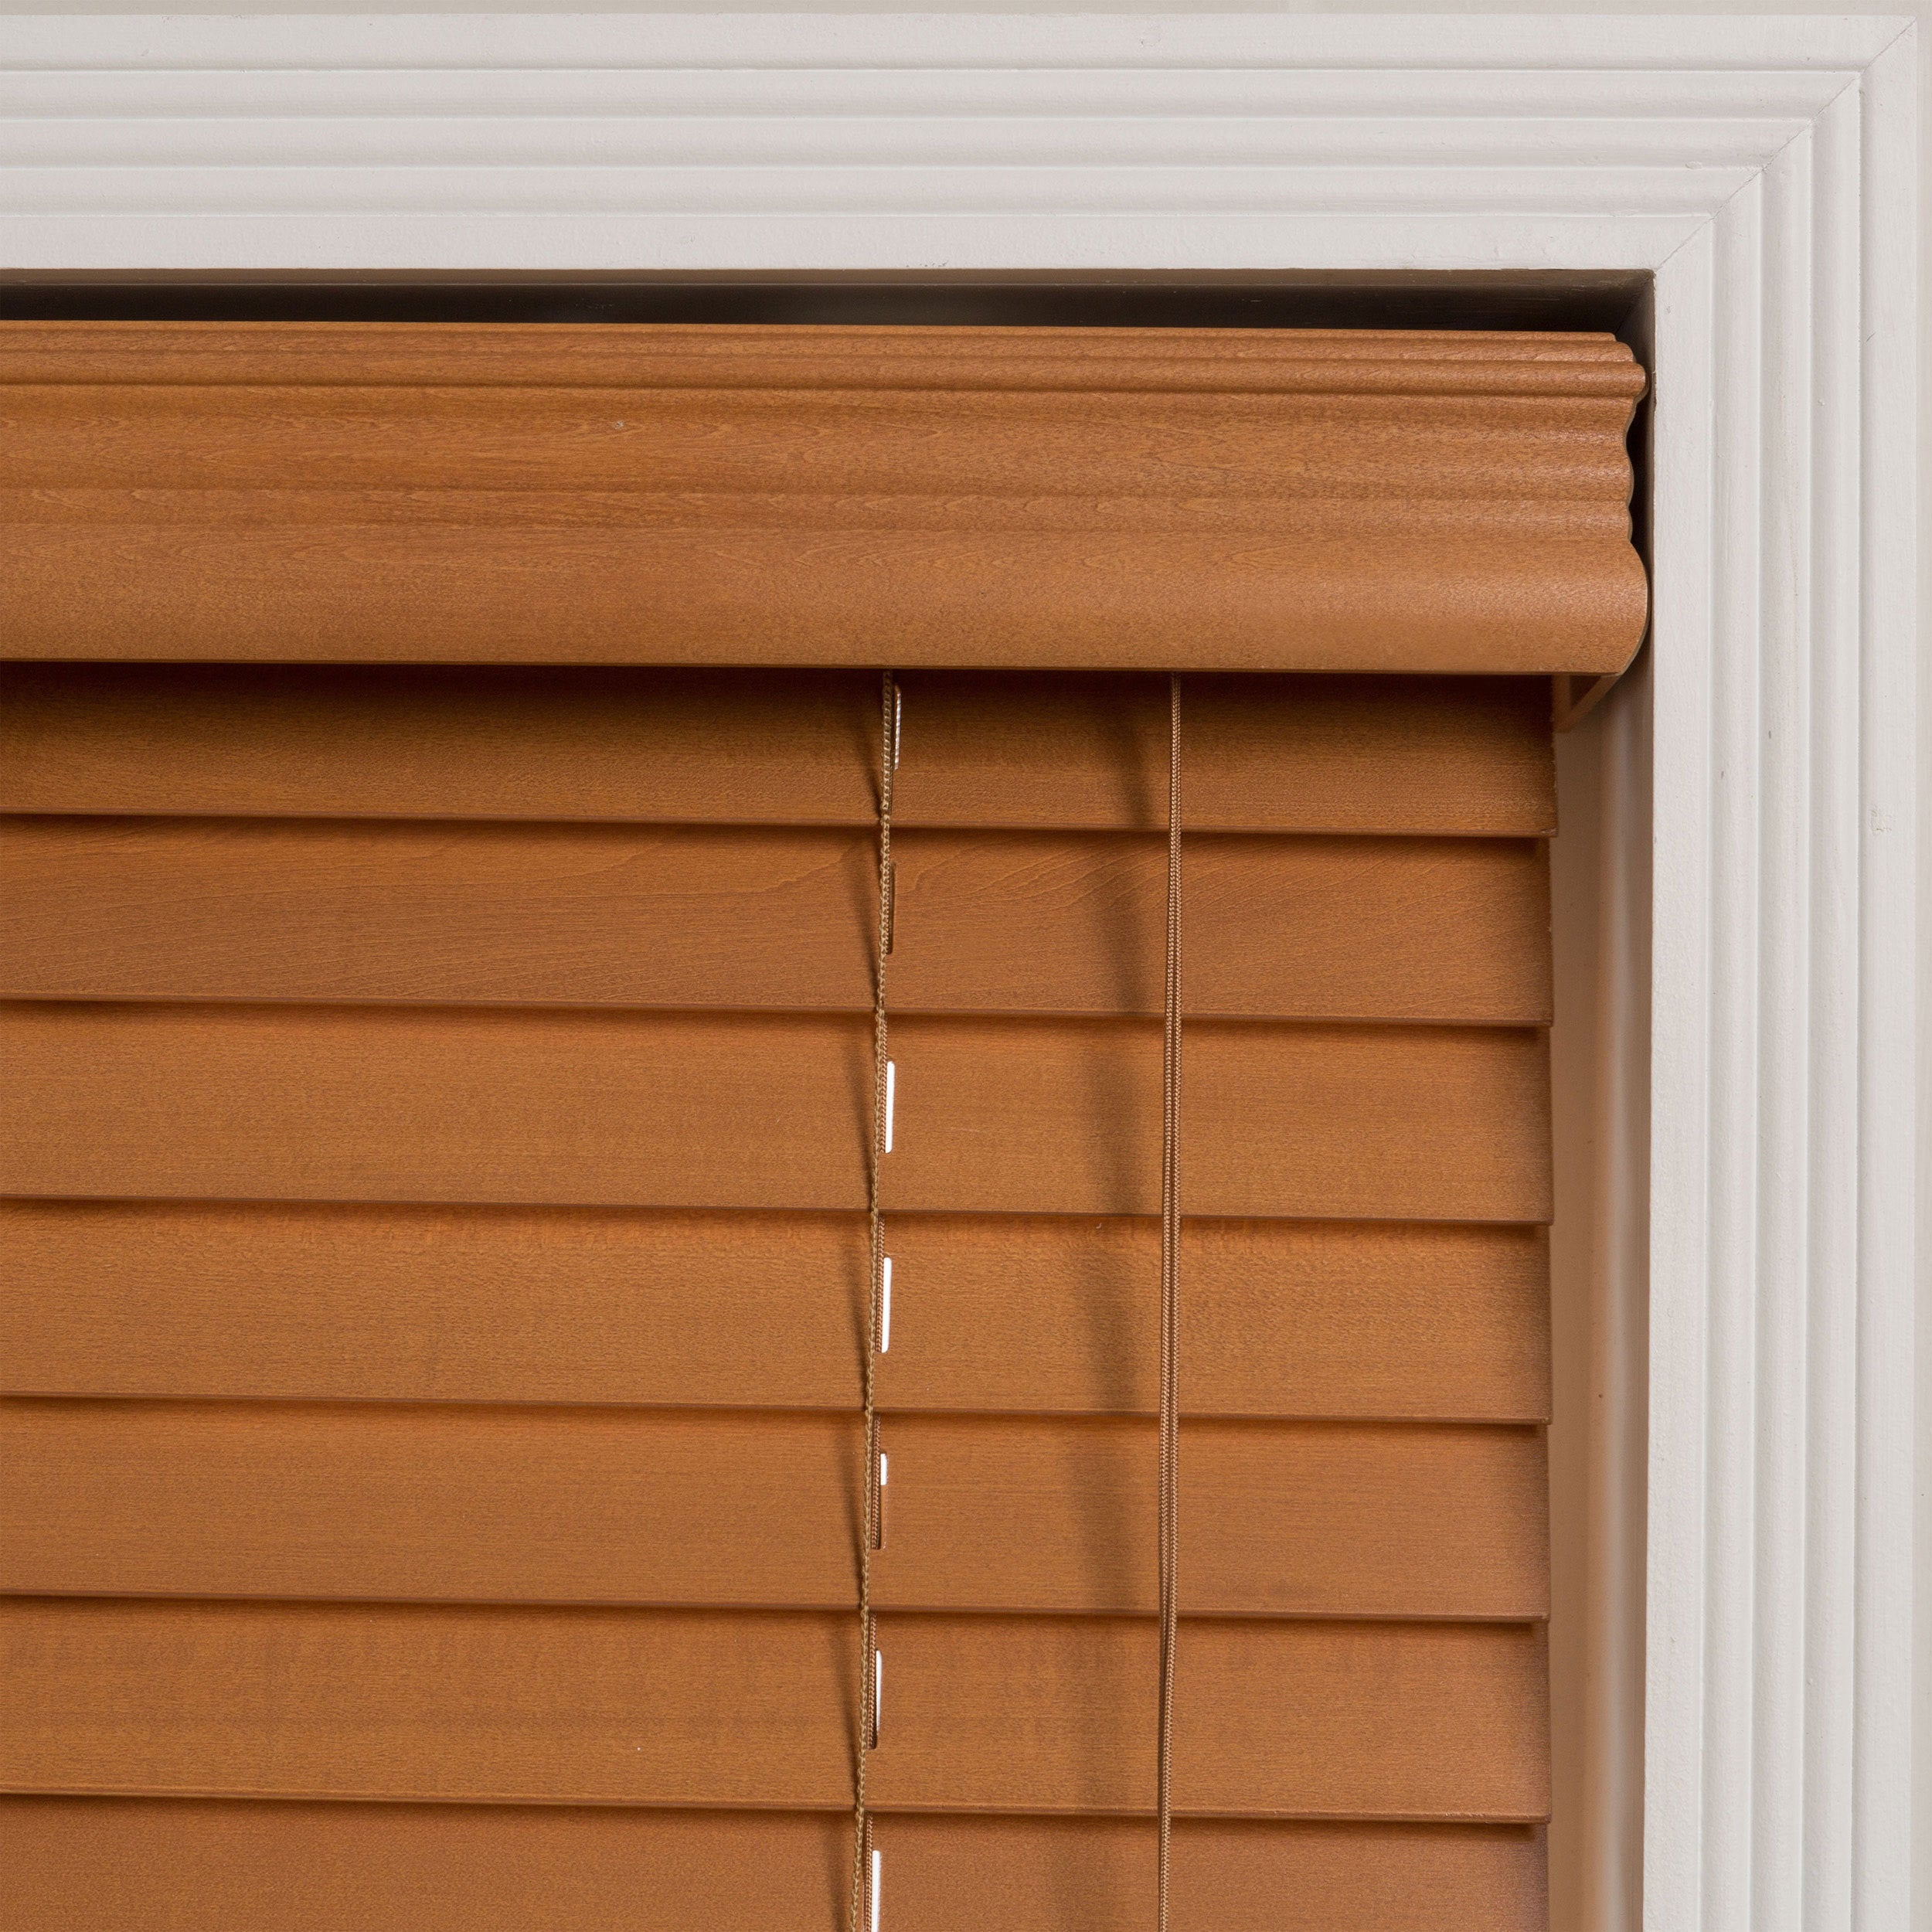 white dow roman matic com treatments curtain shapes blinds fascinating thermal levolor style interesting top octagon bamboo home graber mesmerizing for costco window rolling in decorating emperor filter light selections adorable shades lowes